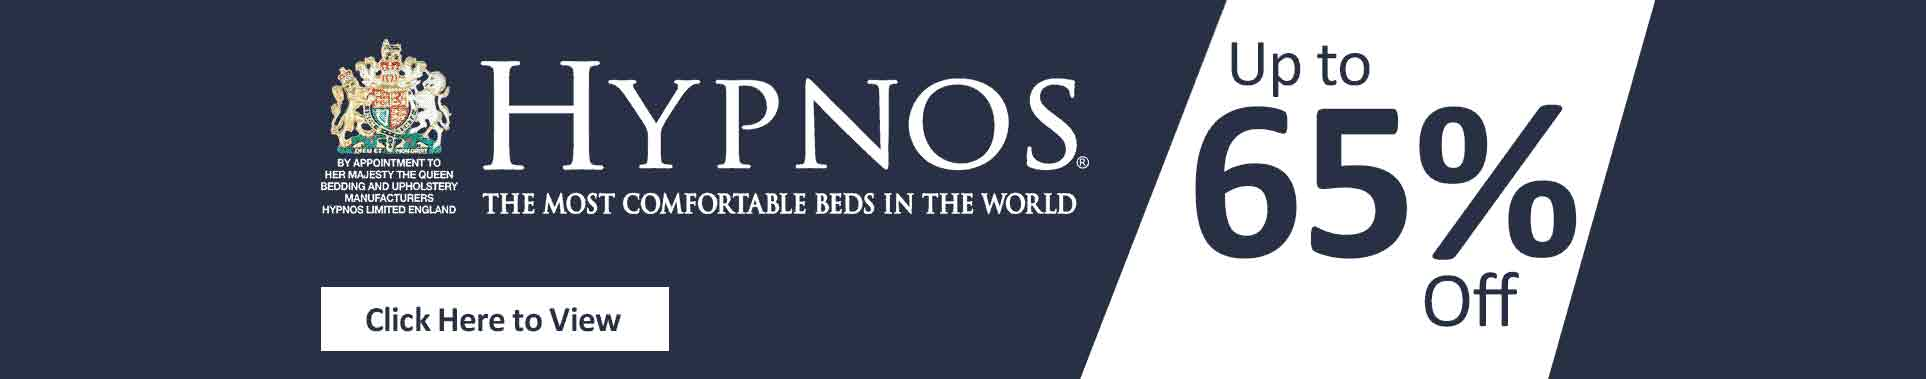 Hypnos Sale Now On